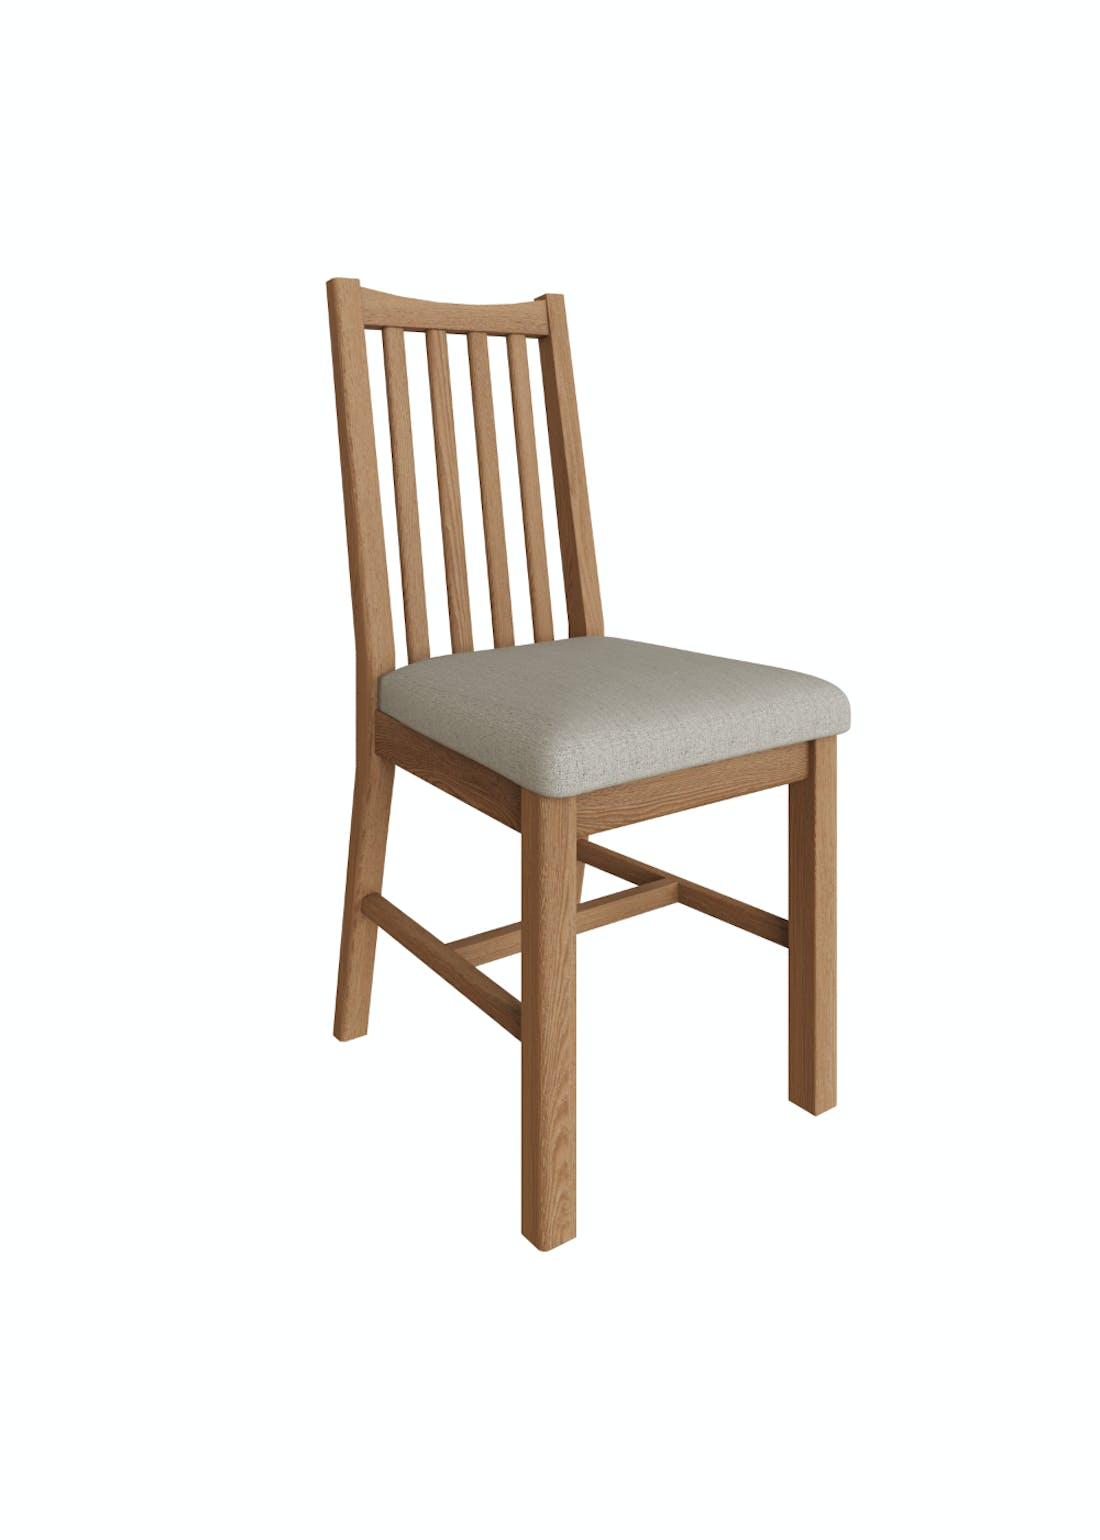 Interiors Direct 2 Pack Grayson Dining Chairs (91cm x 52cm x 42cm)